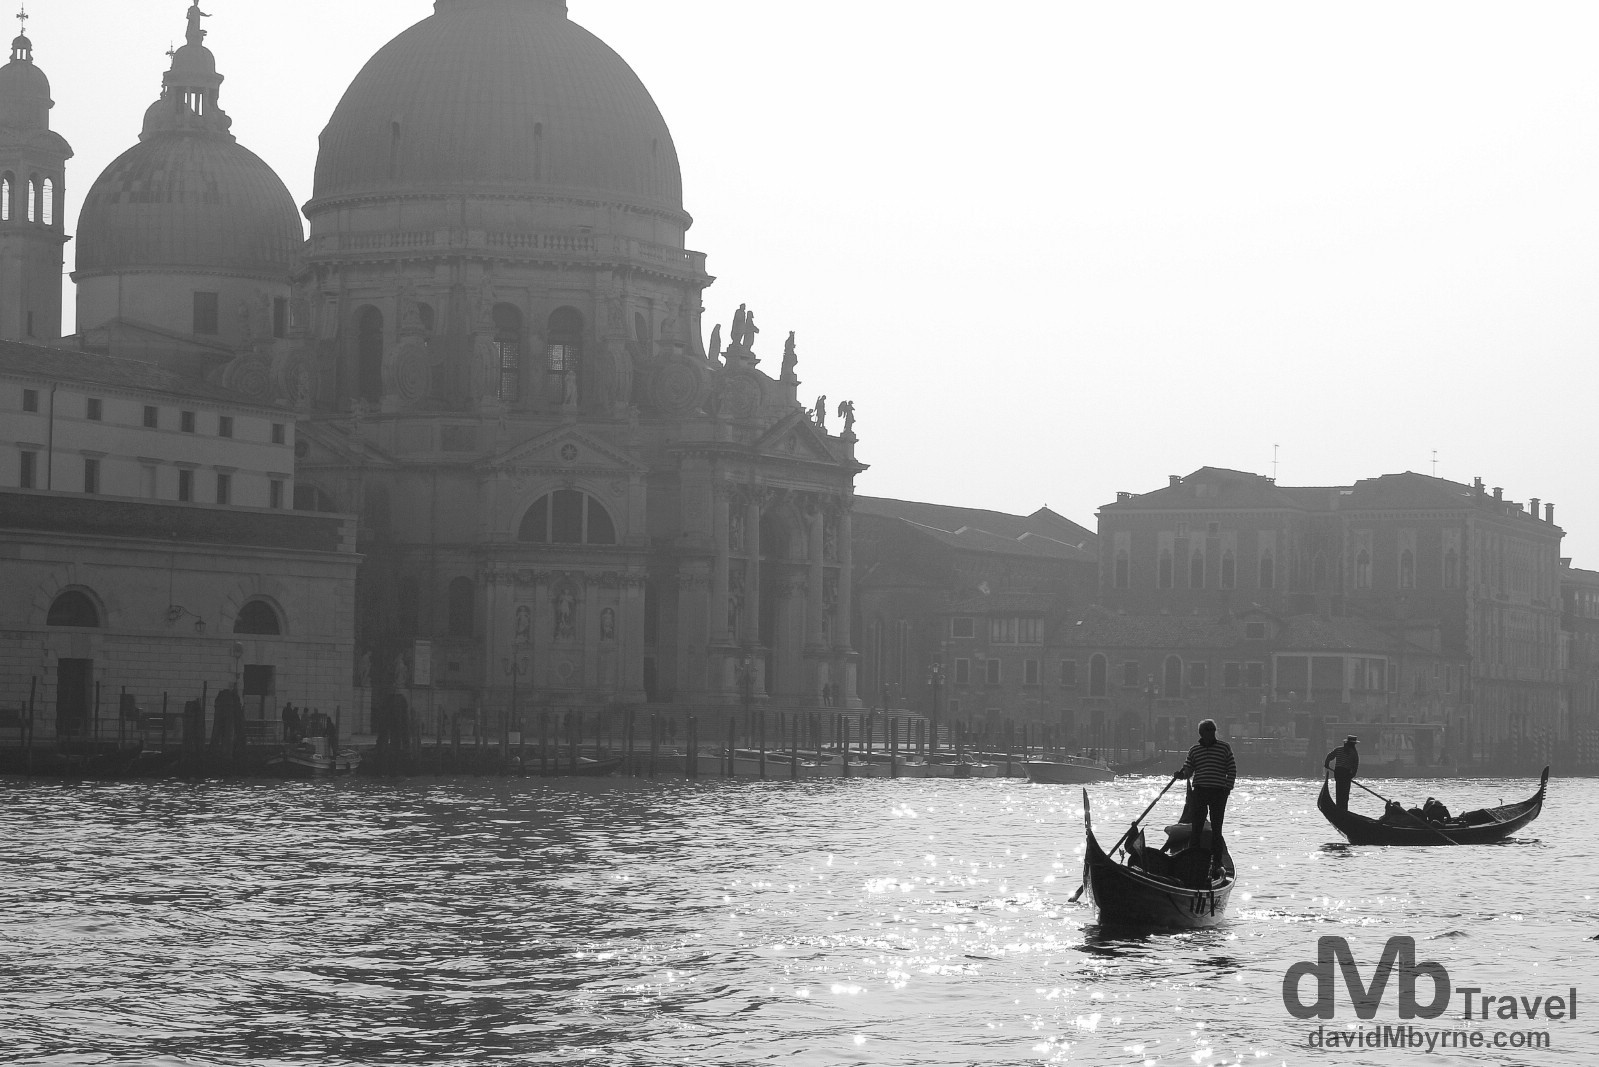 The Grand Canal, Venice, Italy. March 18th, 2014.